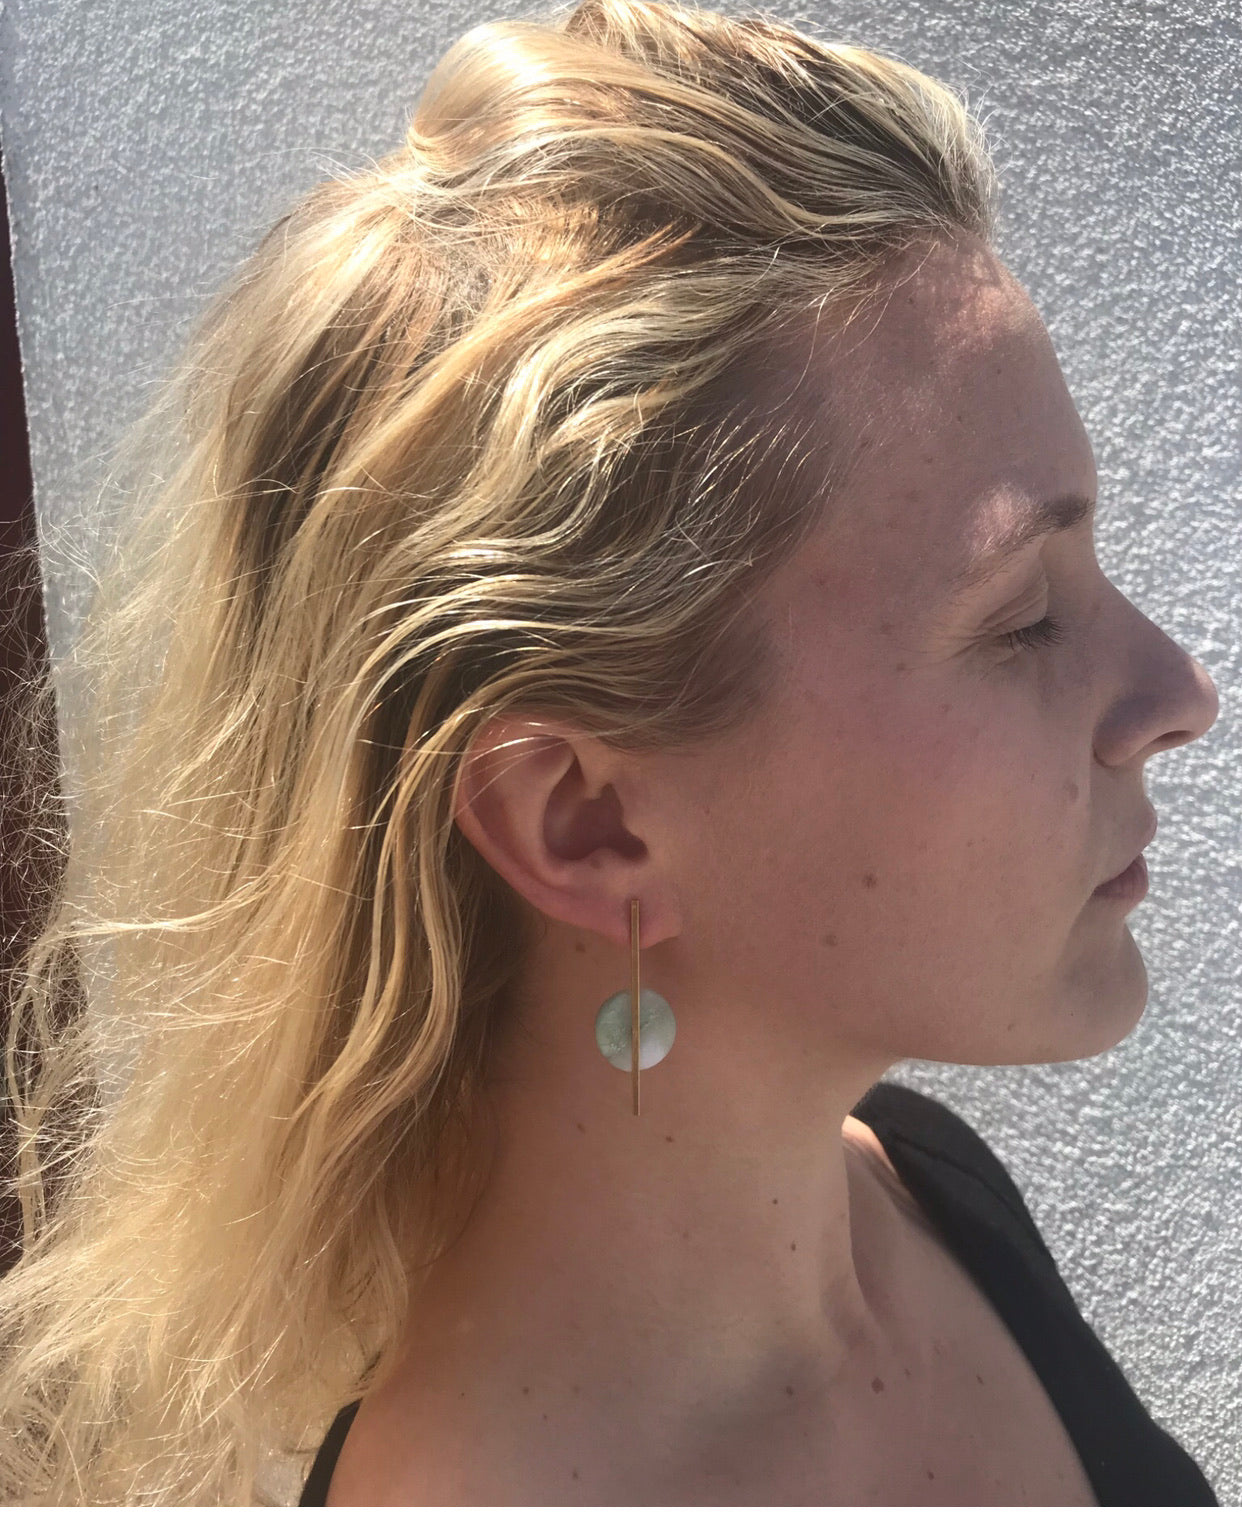 *Milky Quartz or Aqua Skinny Pop Earrings